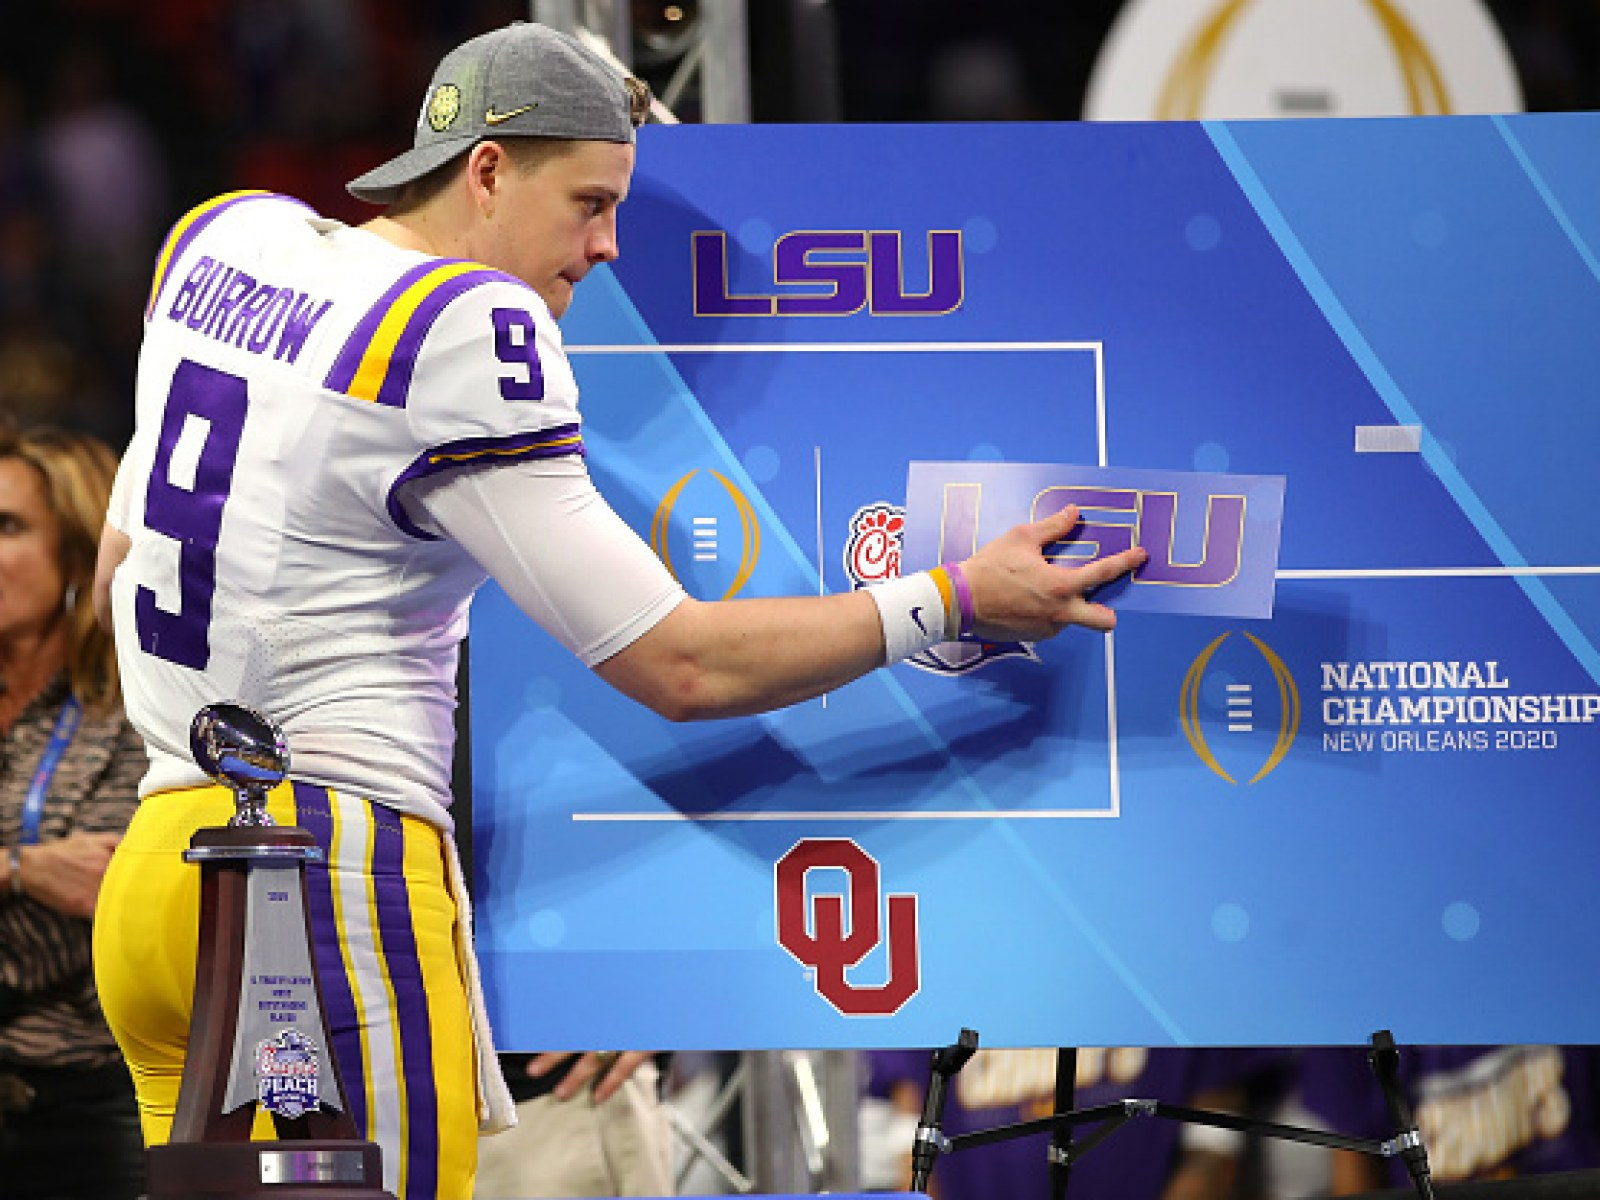 Lsu Clemson Game 2020 >> Lsu And Clemson To Face In College National Championship